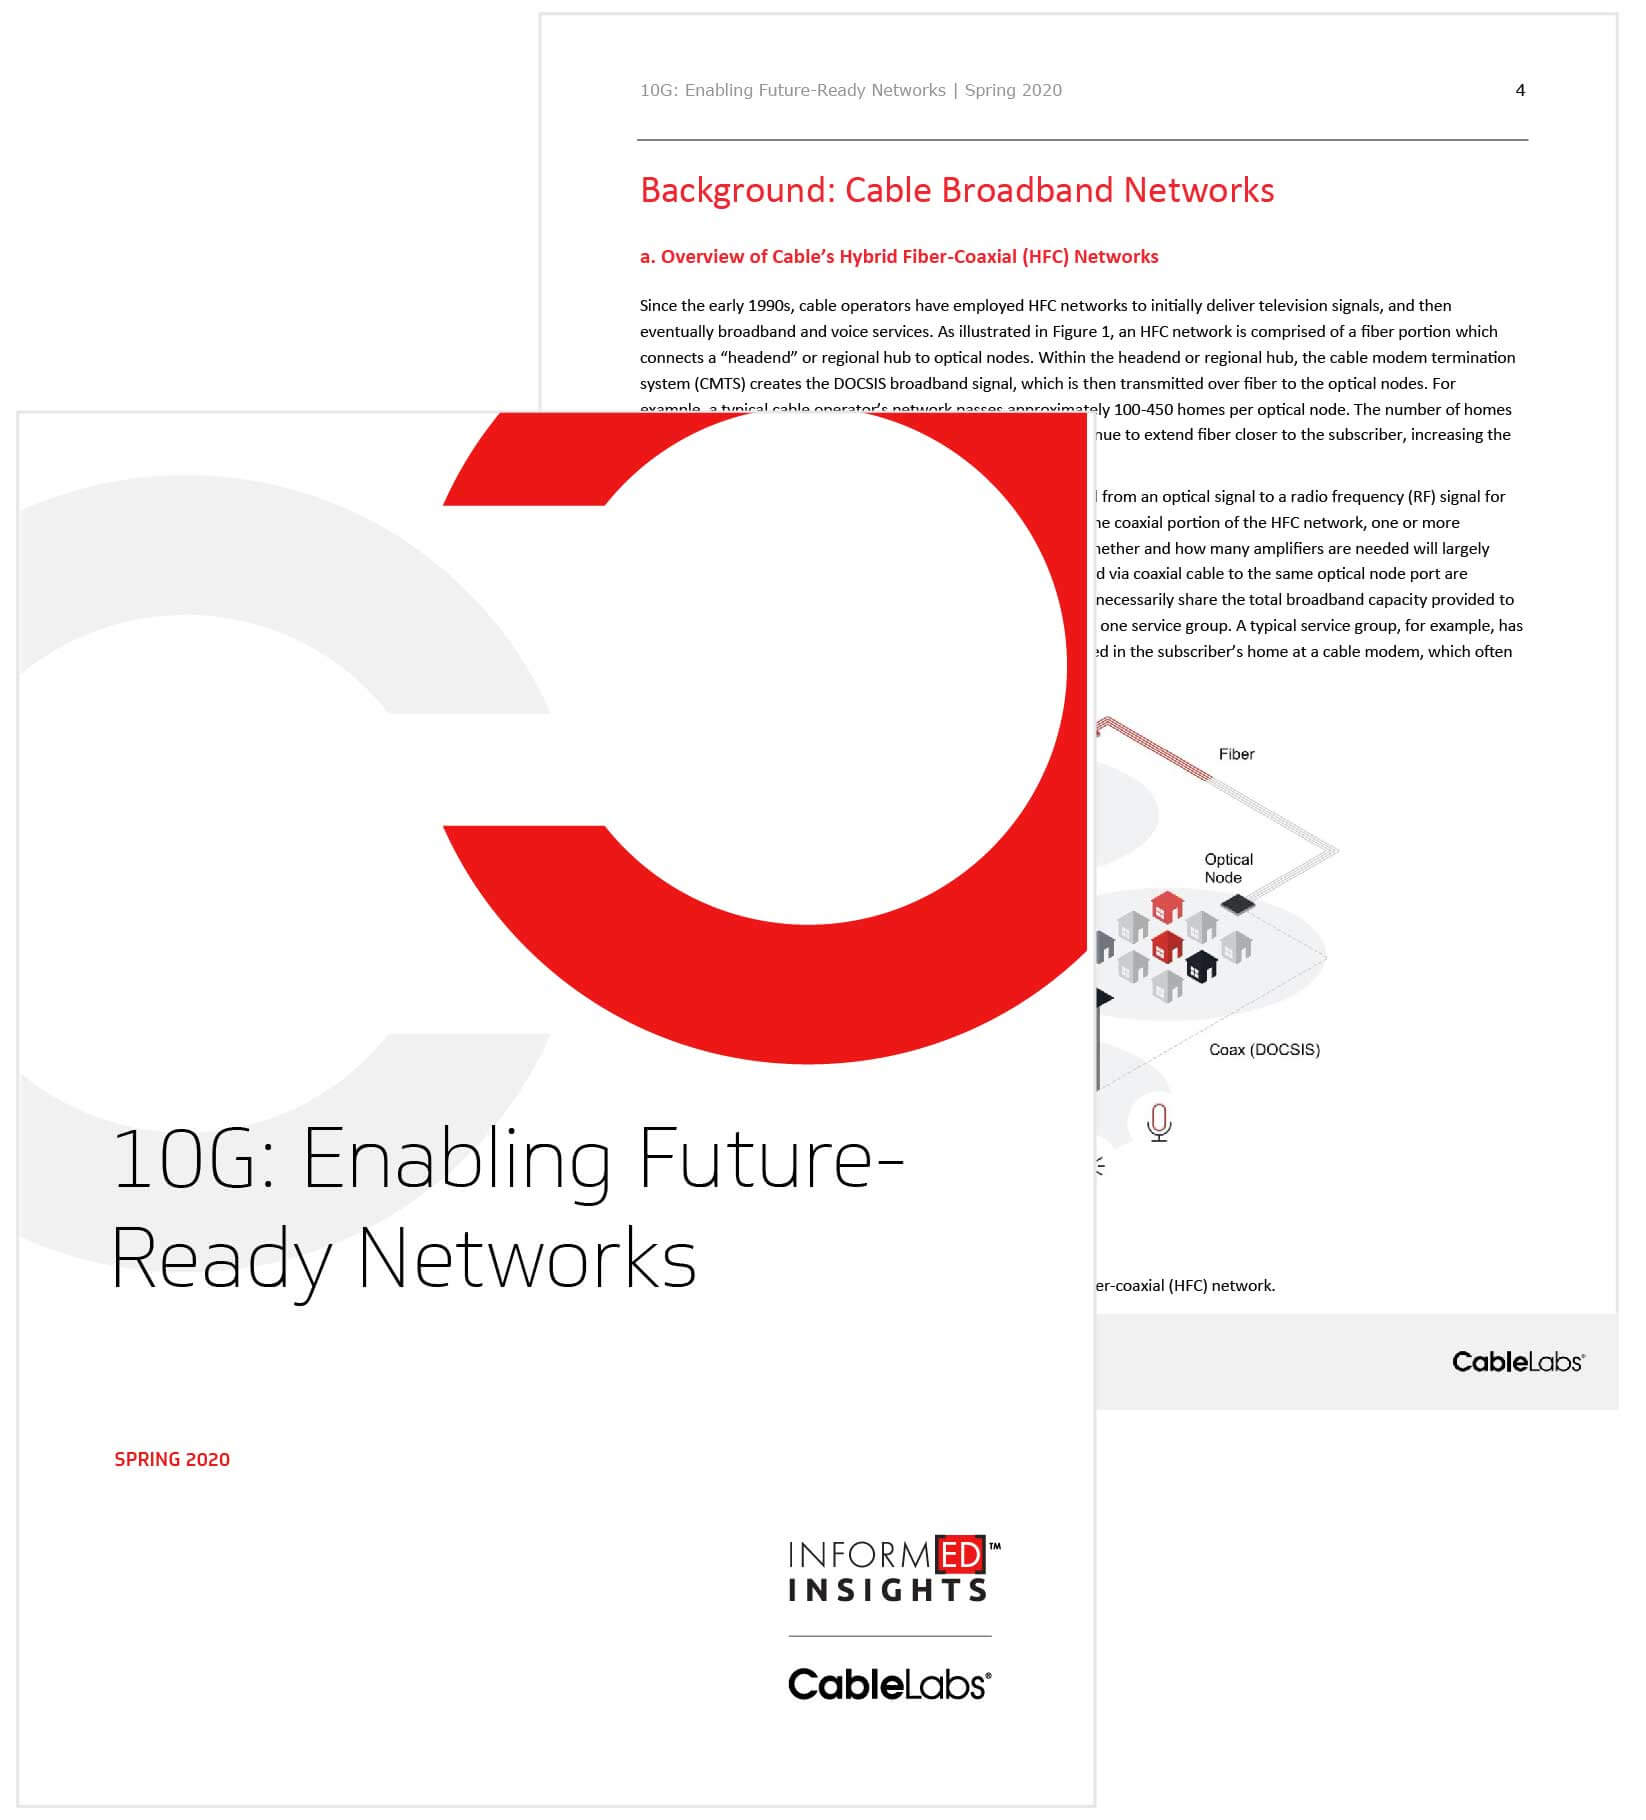 10G: Enabling Future-Ready Networks, Spring 2020